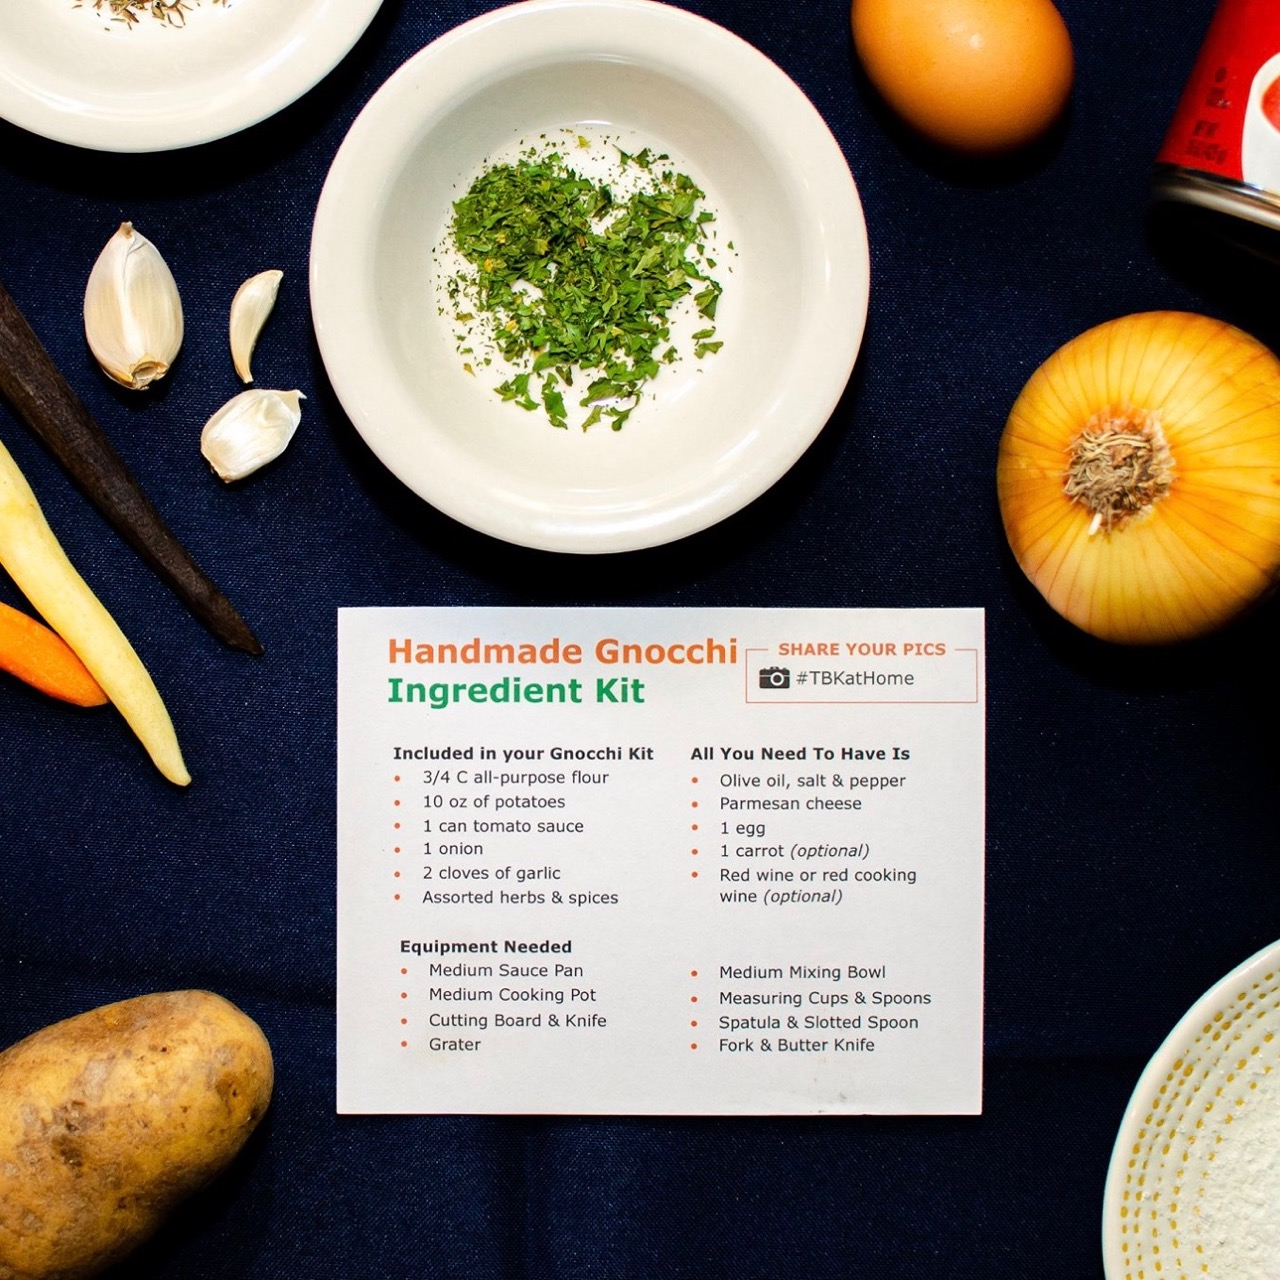 Virtual pizza making class with ingredient kit mailed to each guest